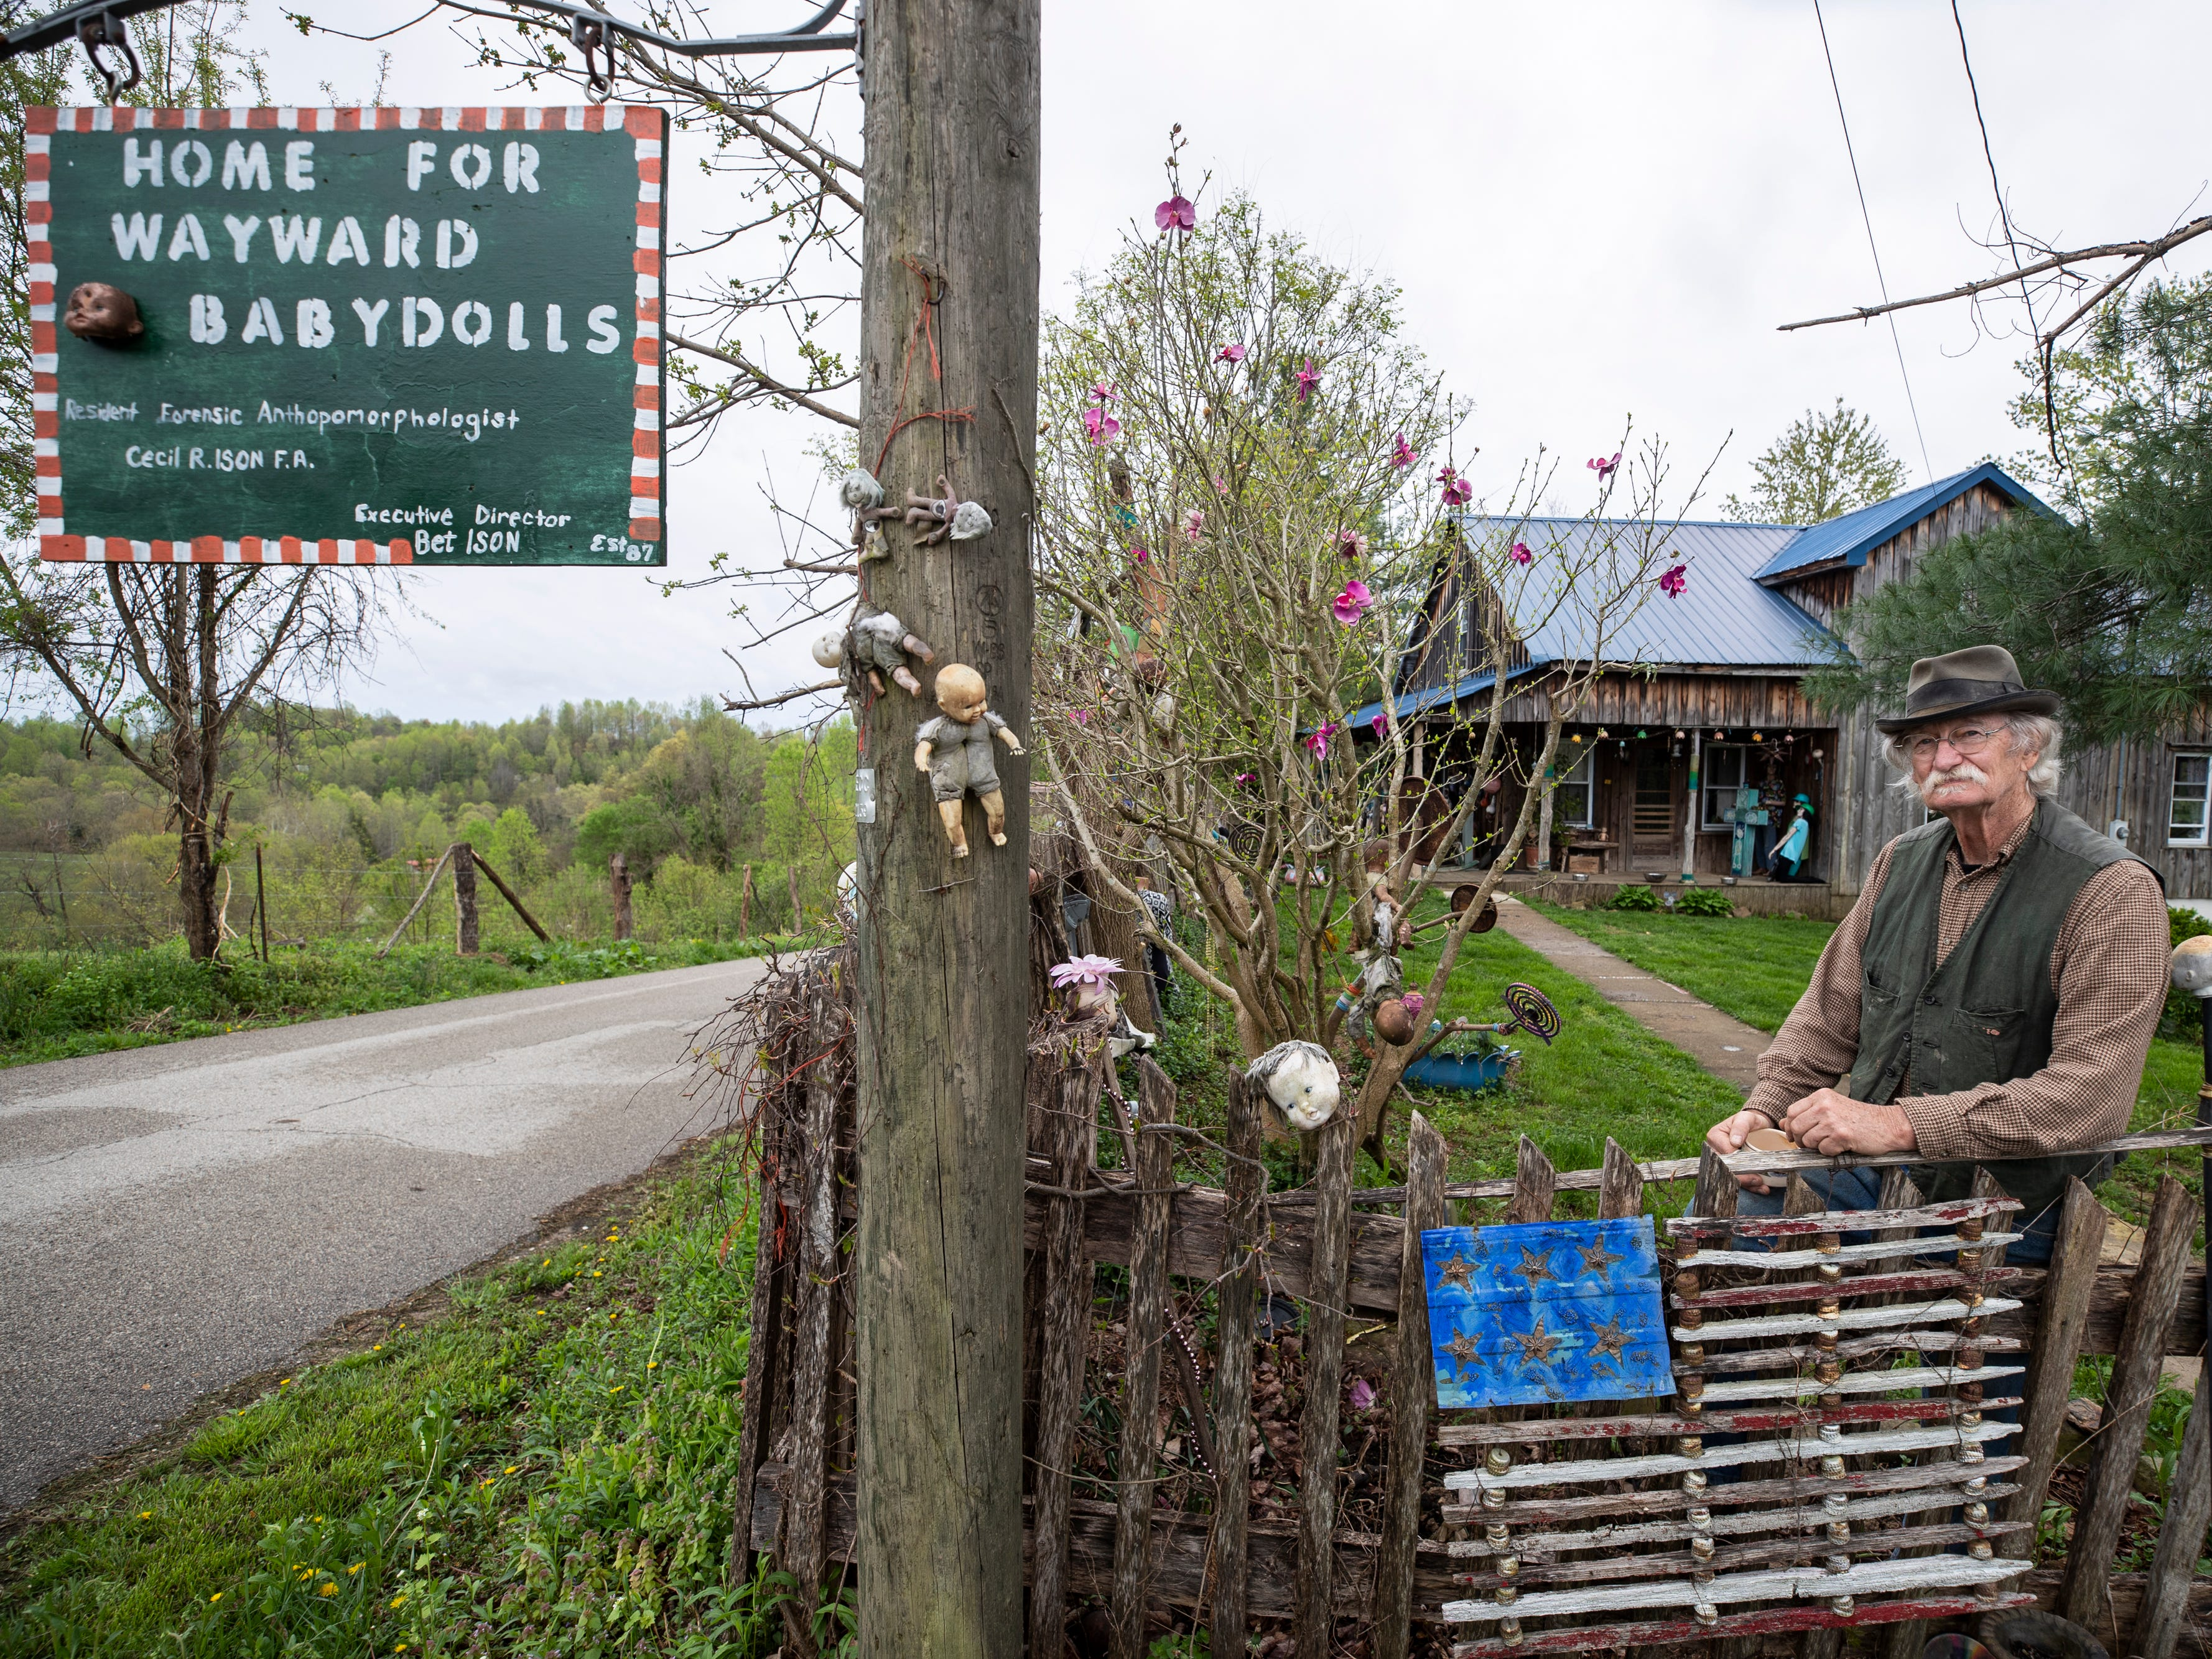 Cecil R. Ison stands a the gate of the Home for Wayward Babydolls. Ison studies abandoned and abused dolls at the home in Elliotville, Ky. April 19, 2019